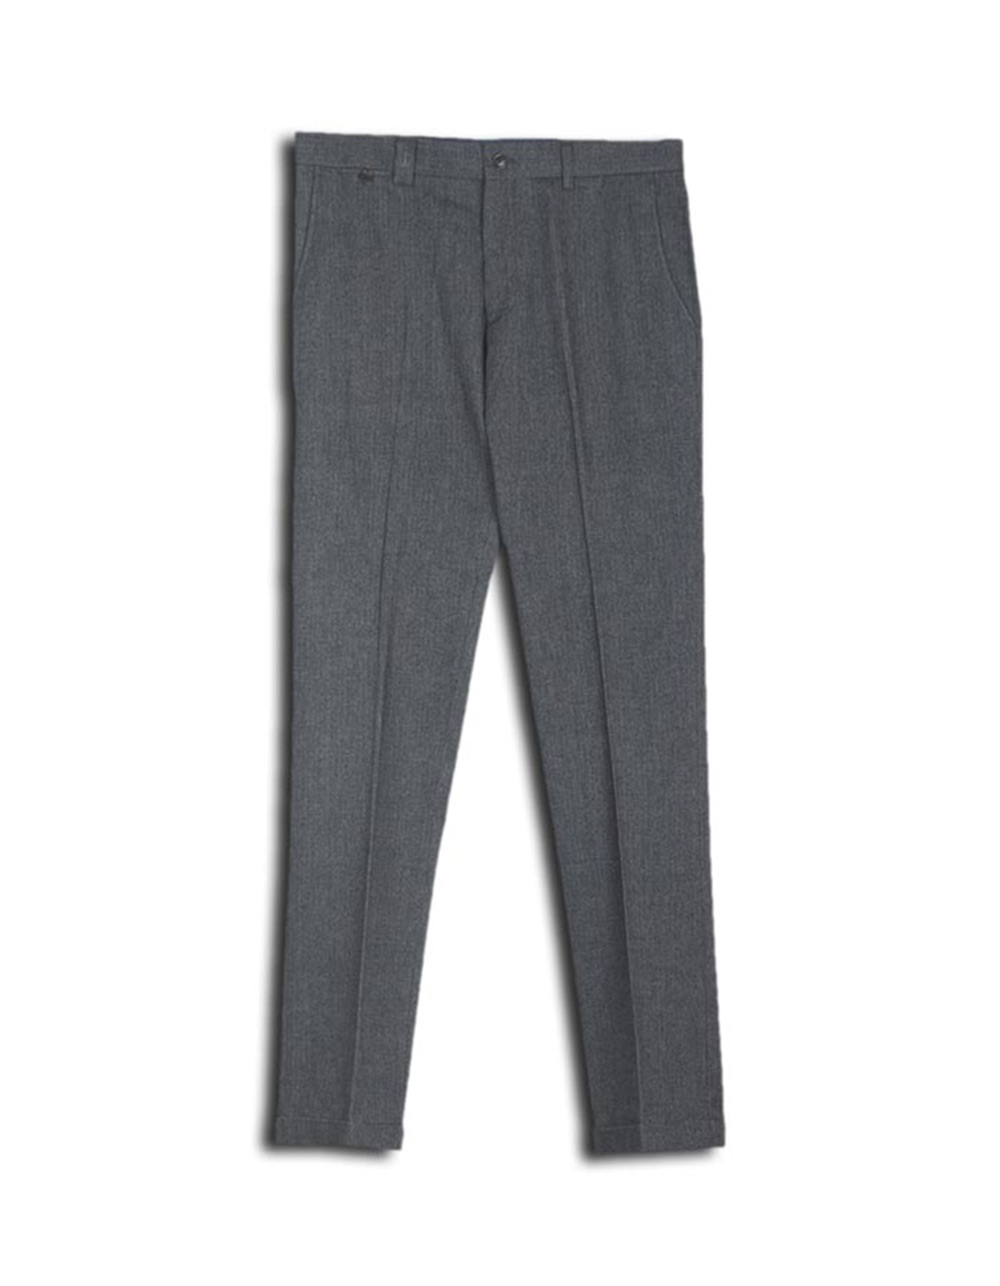 Grey semi dress trousers